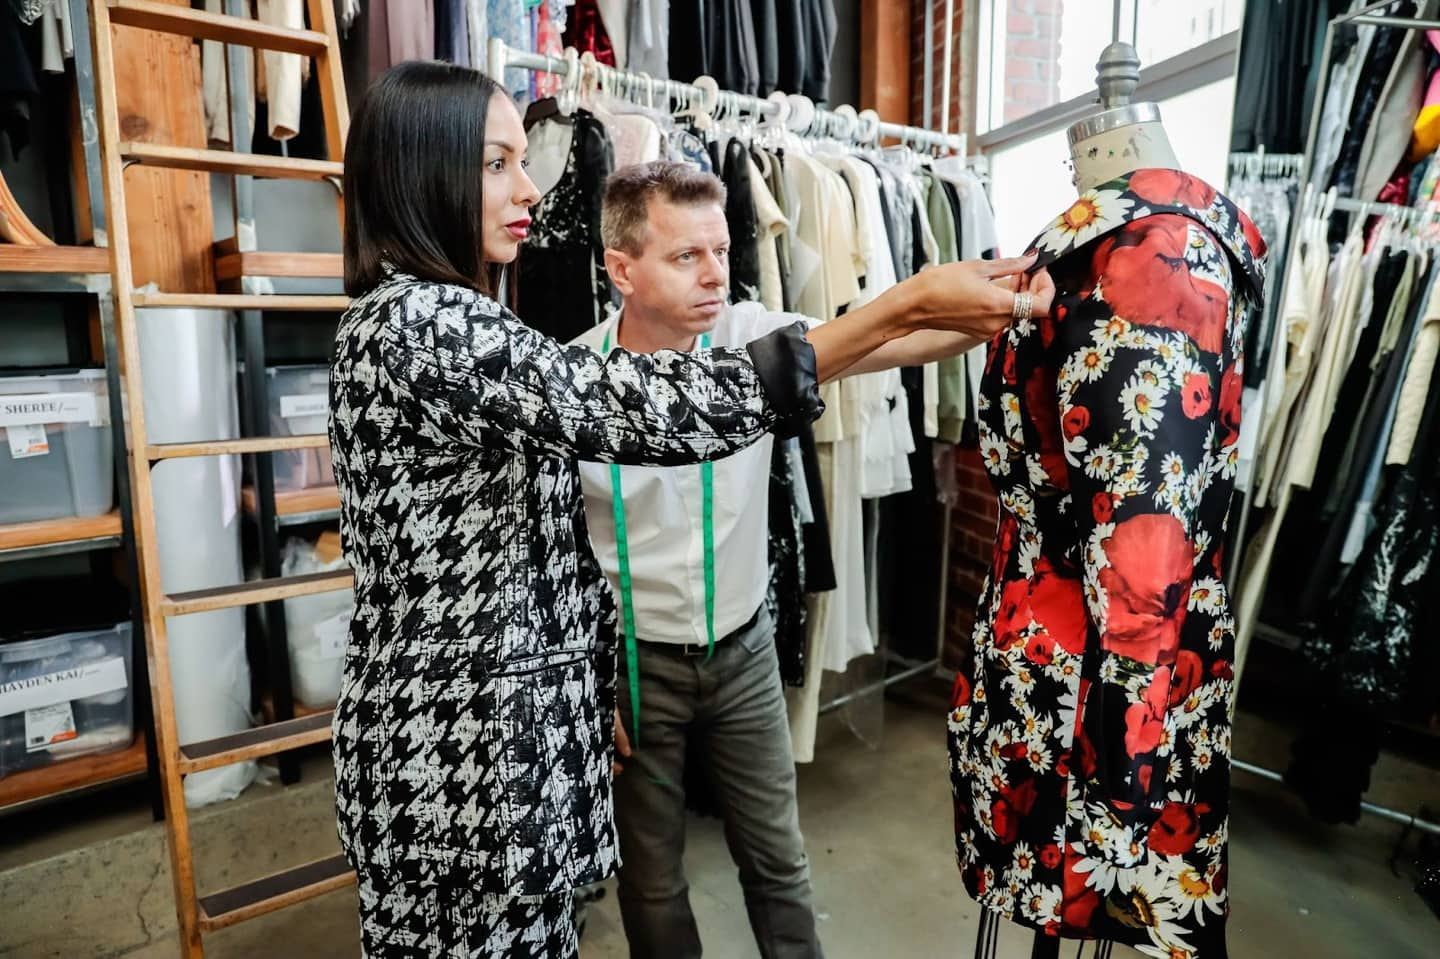 Two clothing manufacturers examine a dress on a mannequin